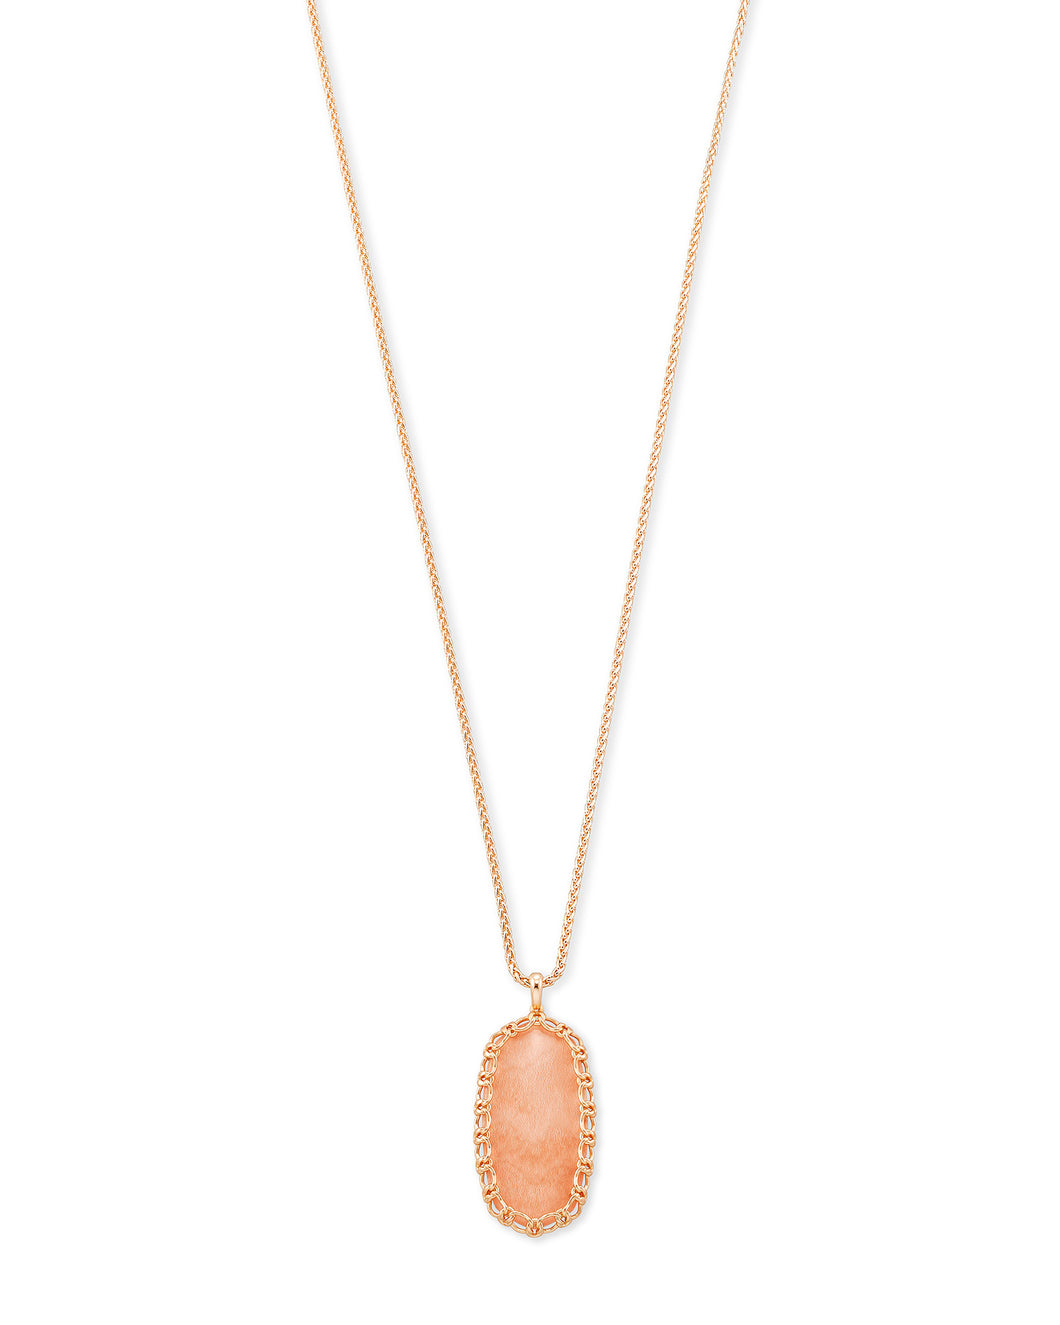 Macrame Reid Rose Gold Long Pendant Necklace In Blush Wood